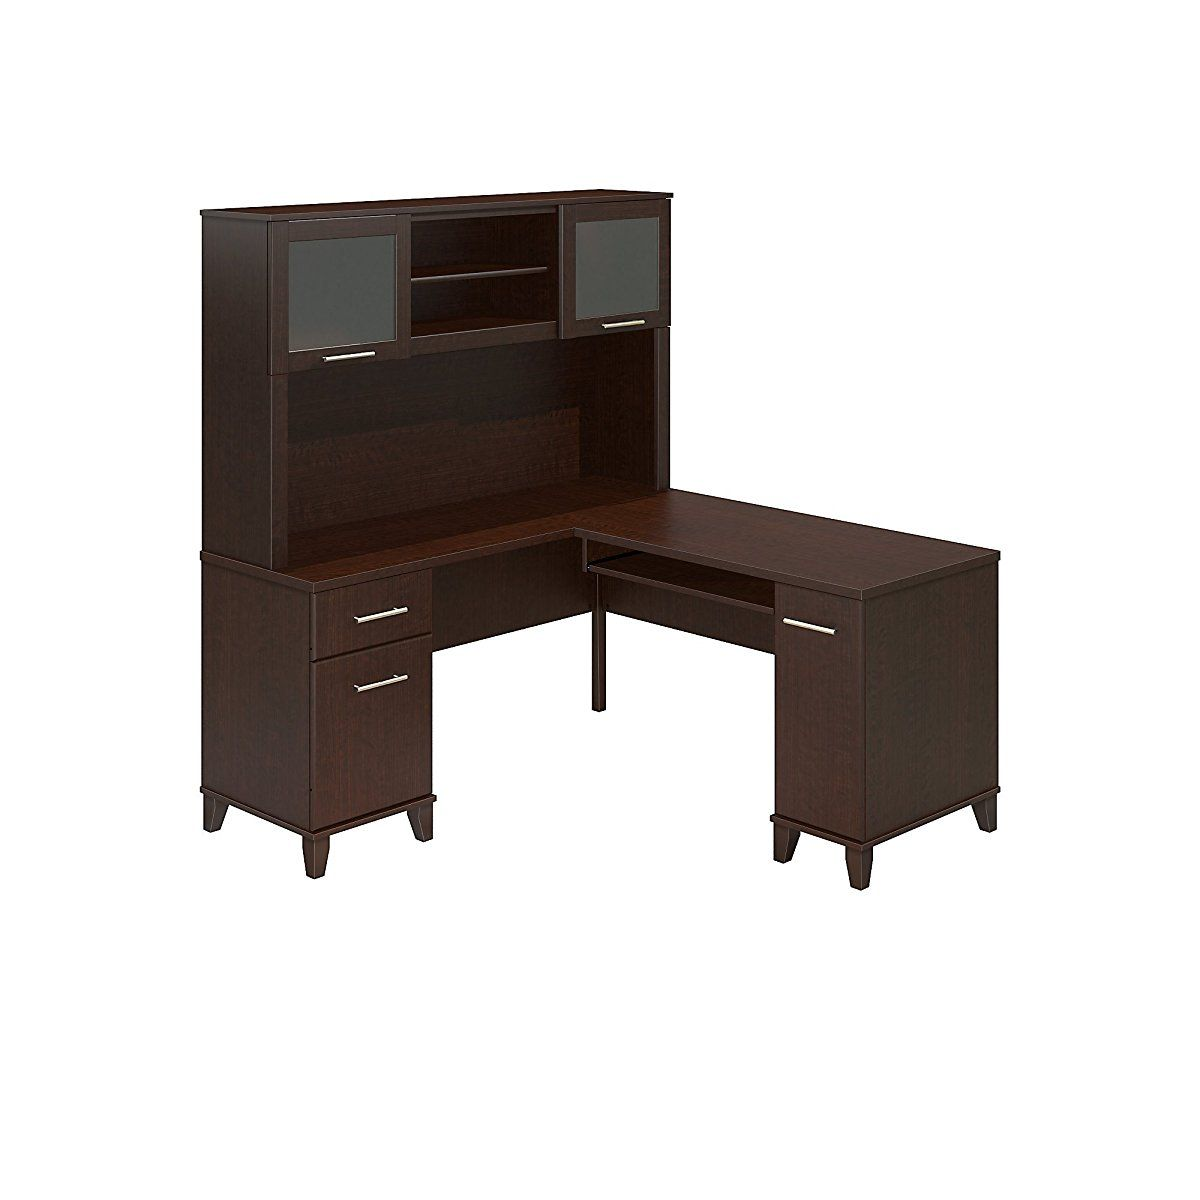 L Shaped Desk with Hutch in Cherry Office Desk in Pinterest